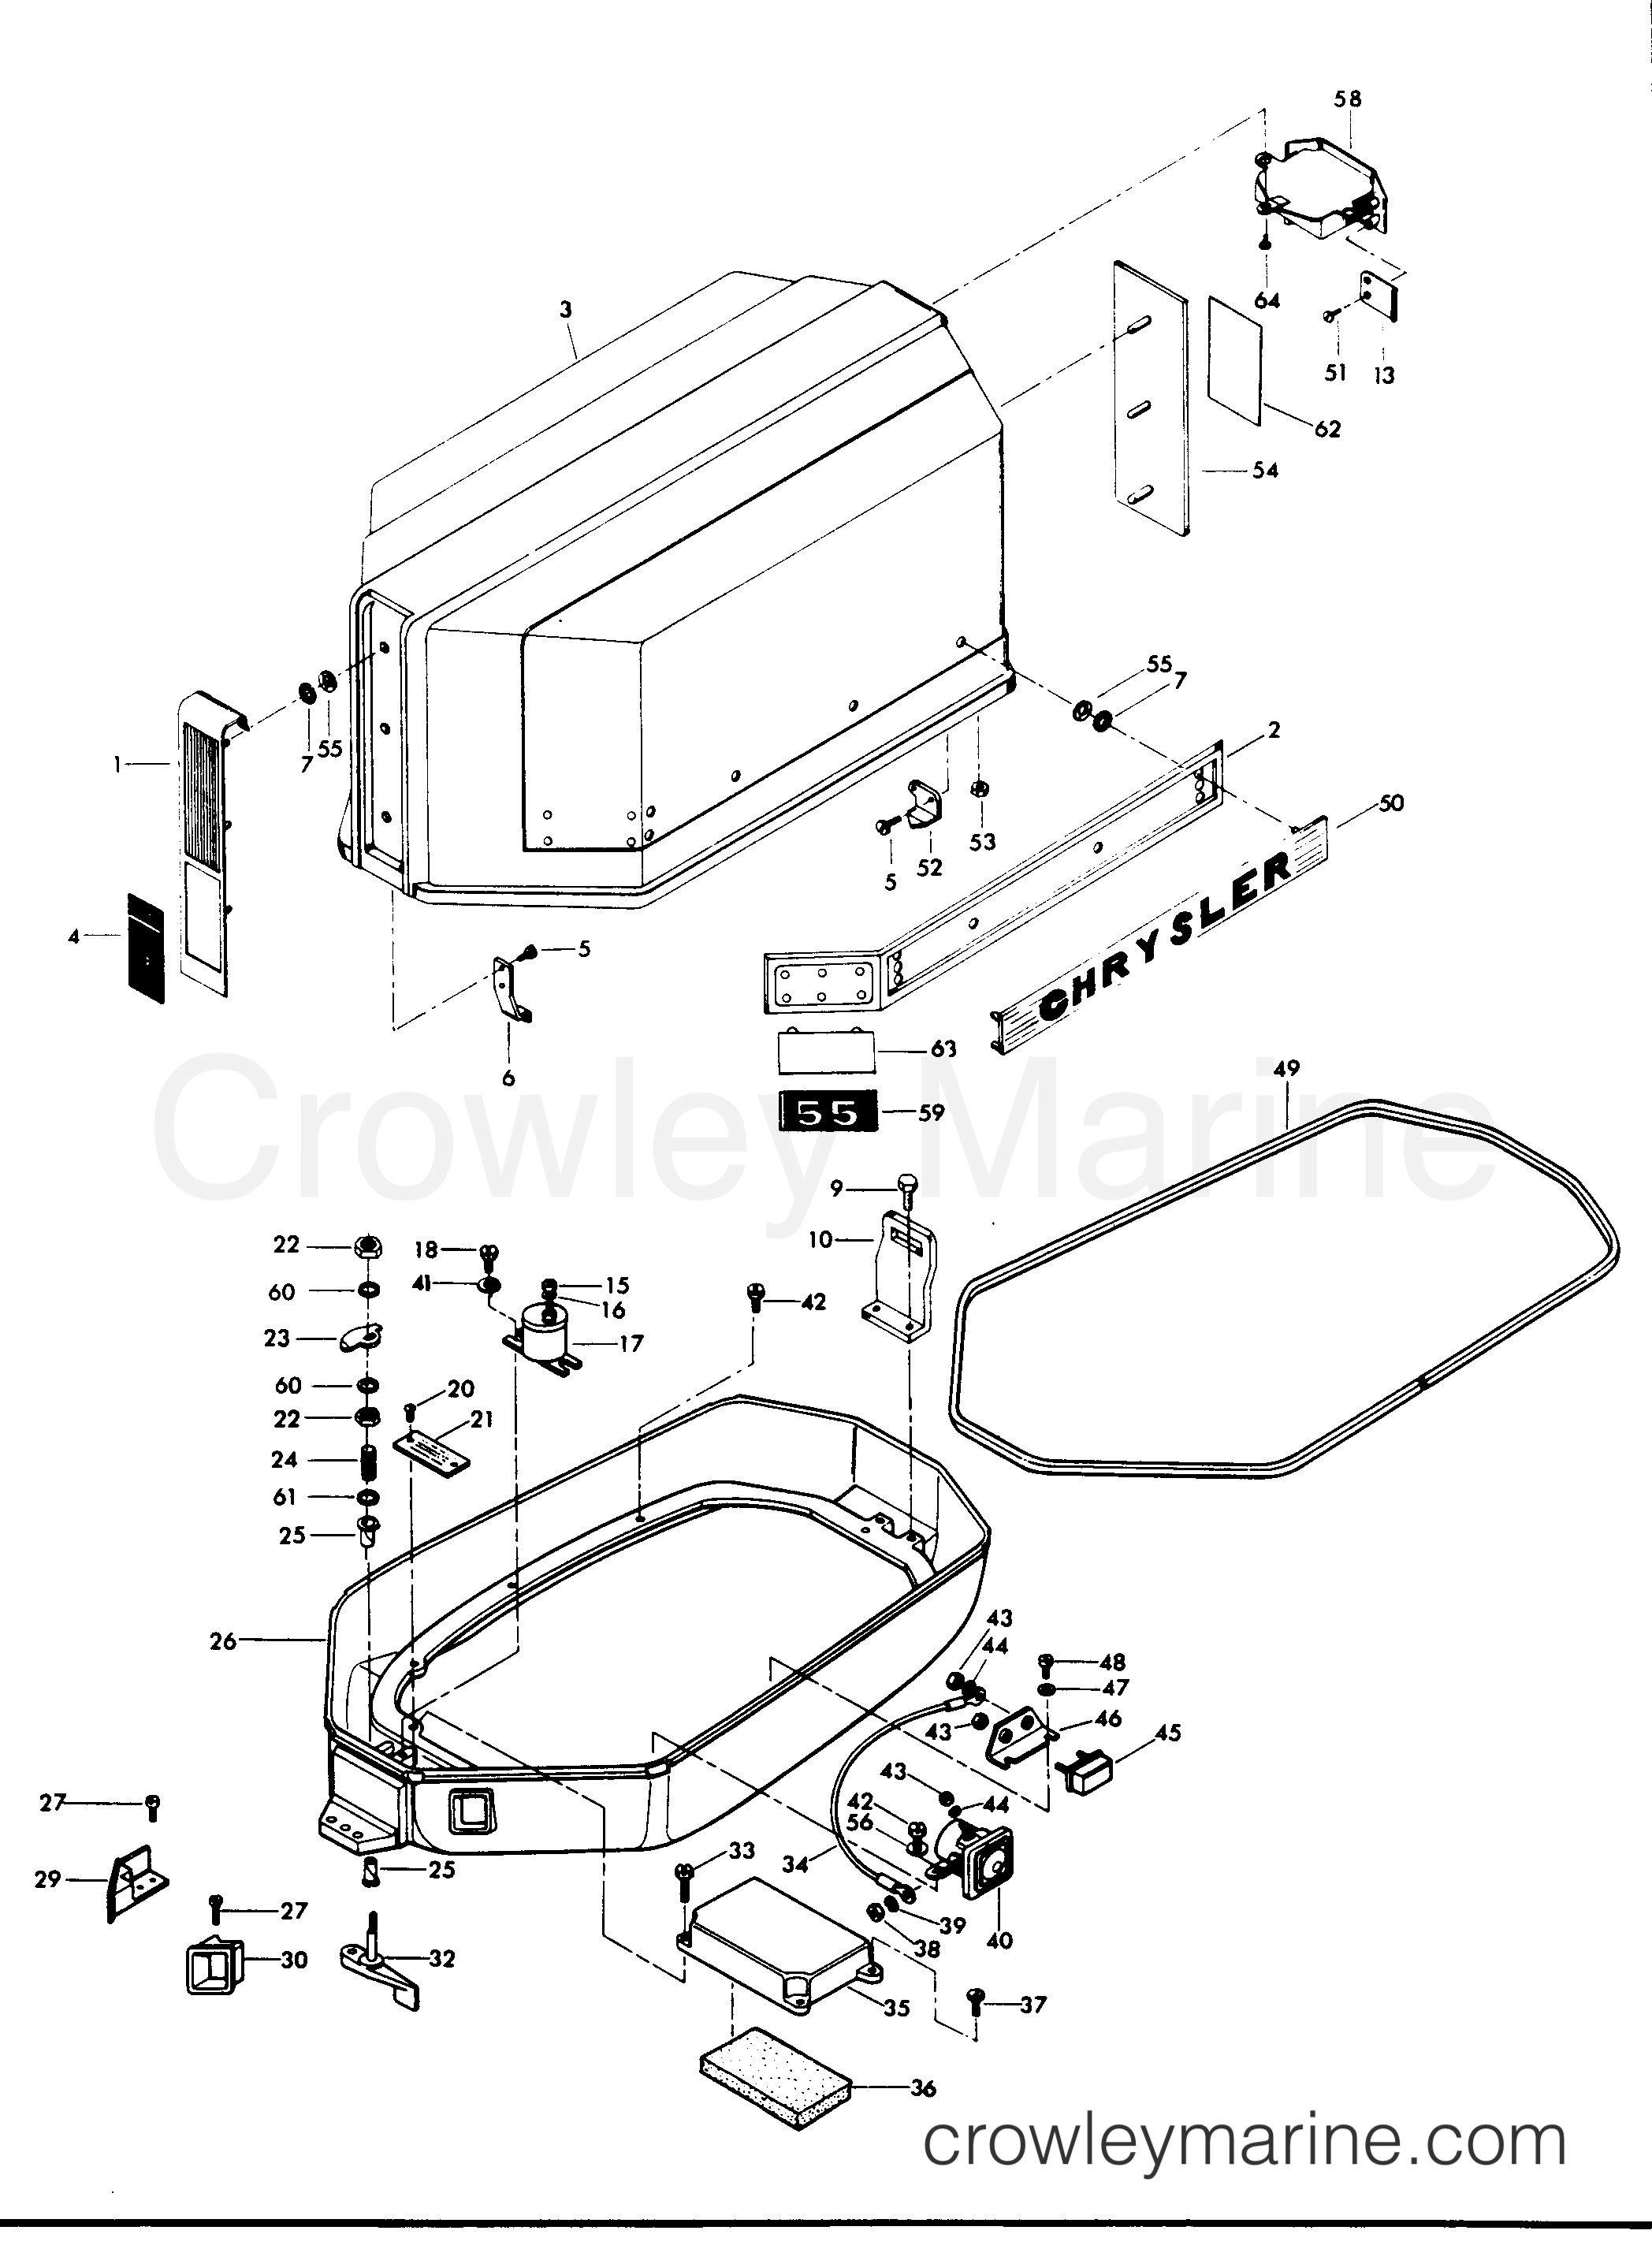 Engine Cover And Support Plate